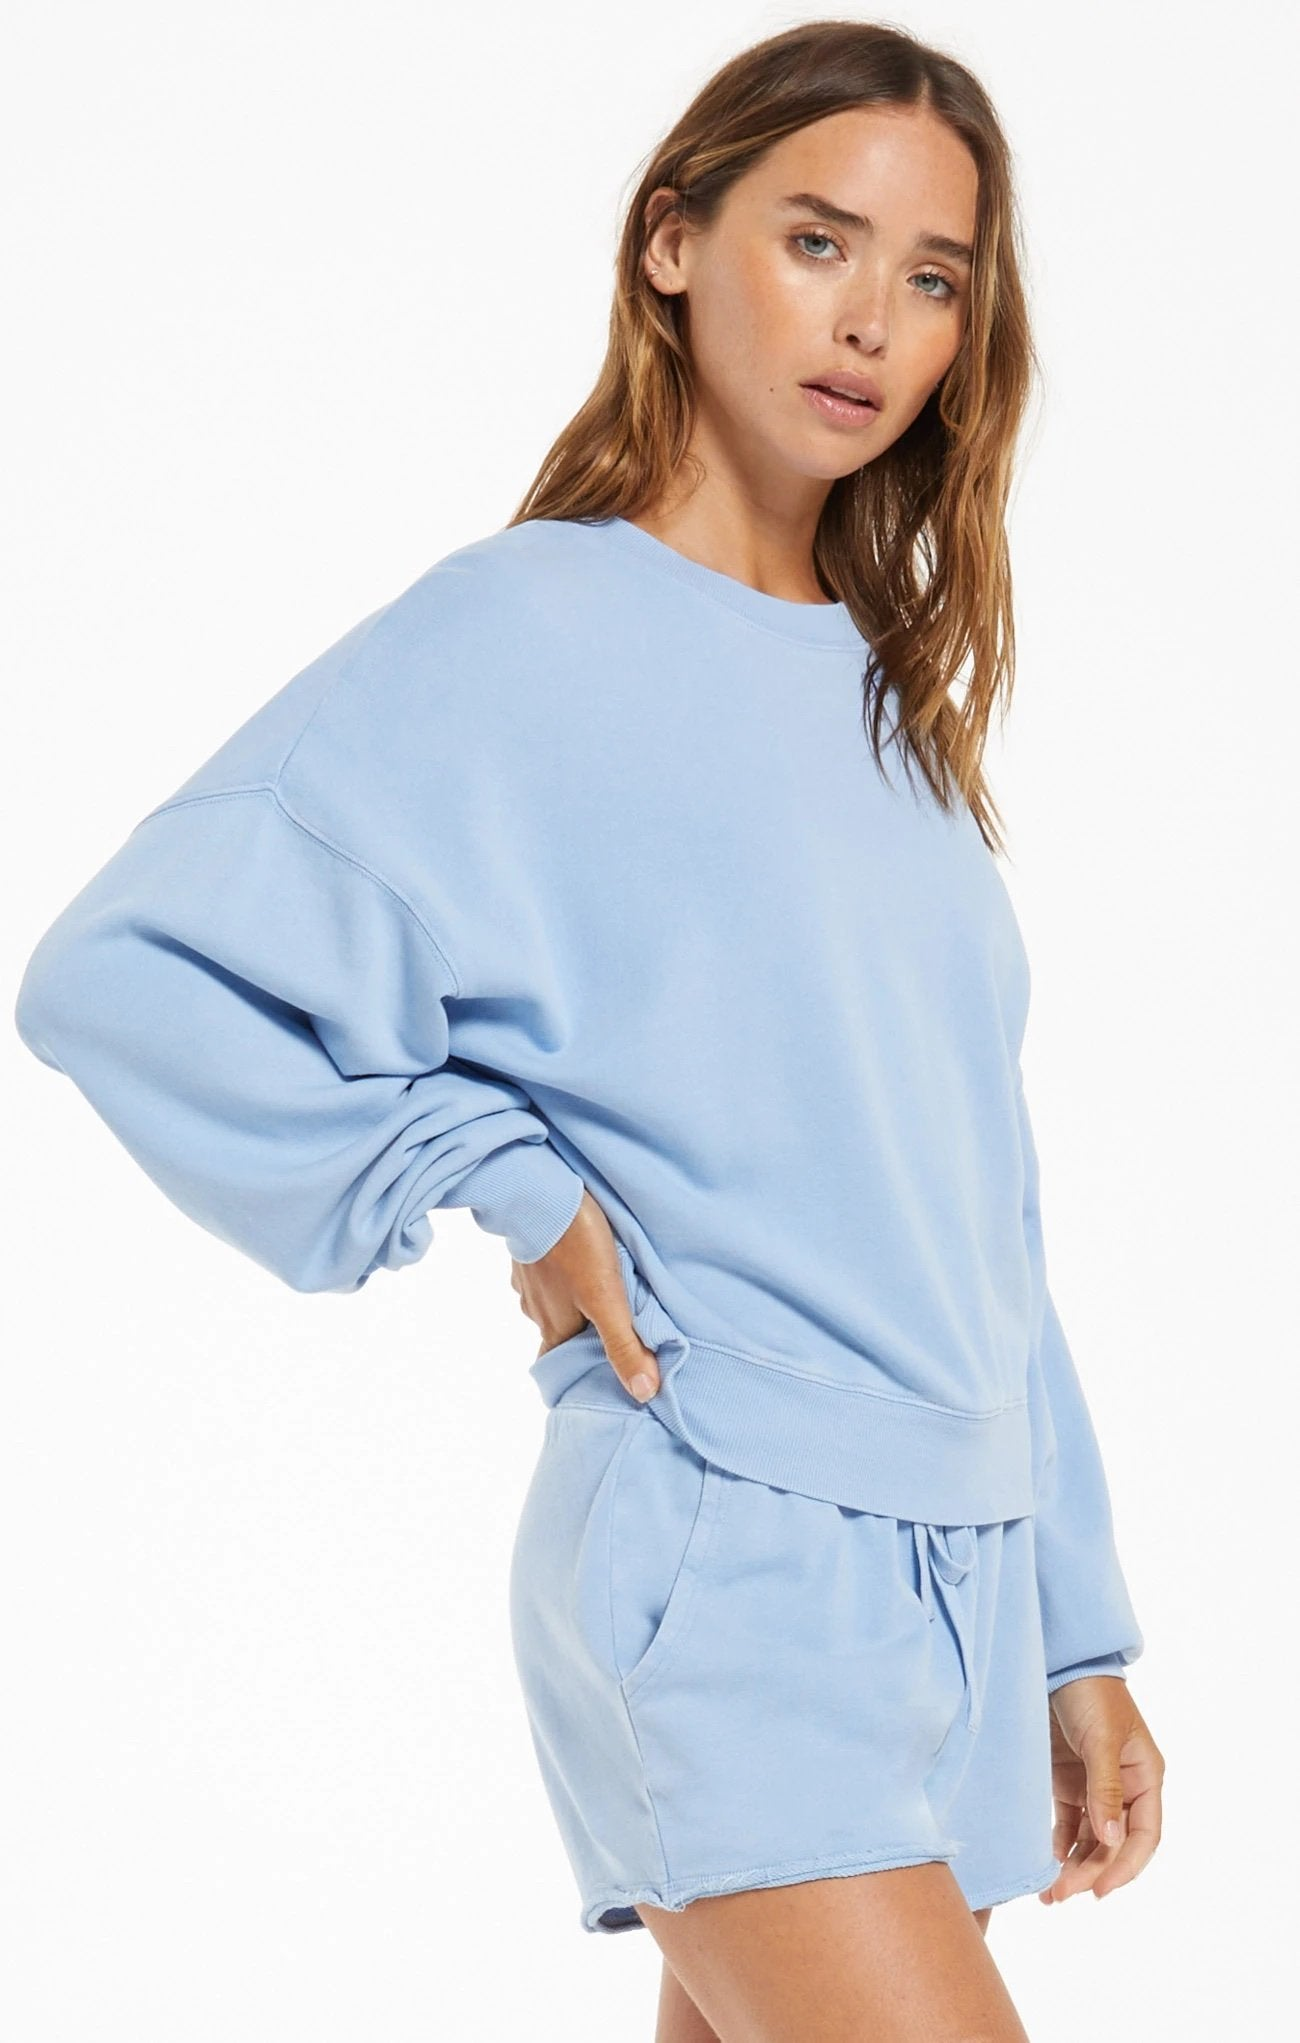 Z SUPPLY Women's Top Z Supply Lia Washed Pullover || David's Clothing